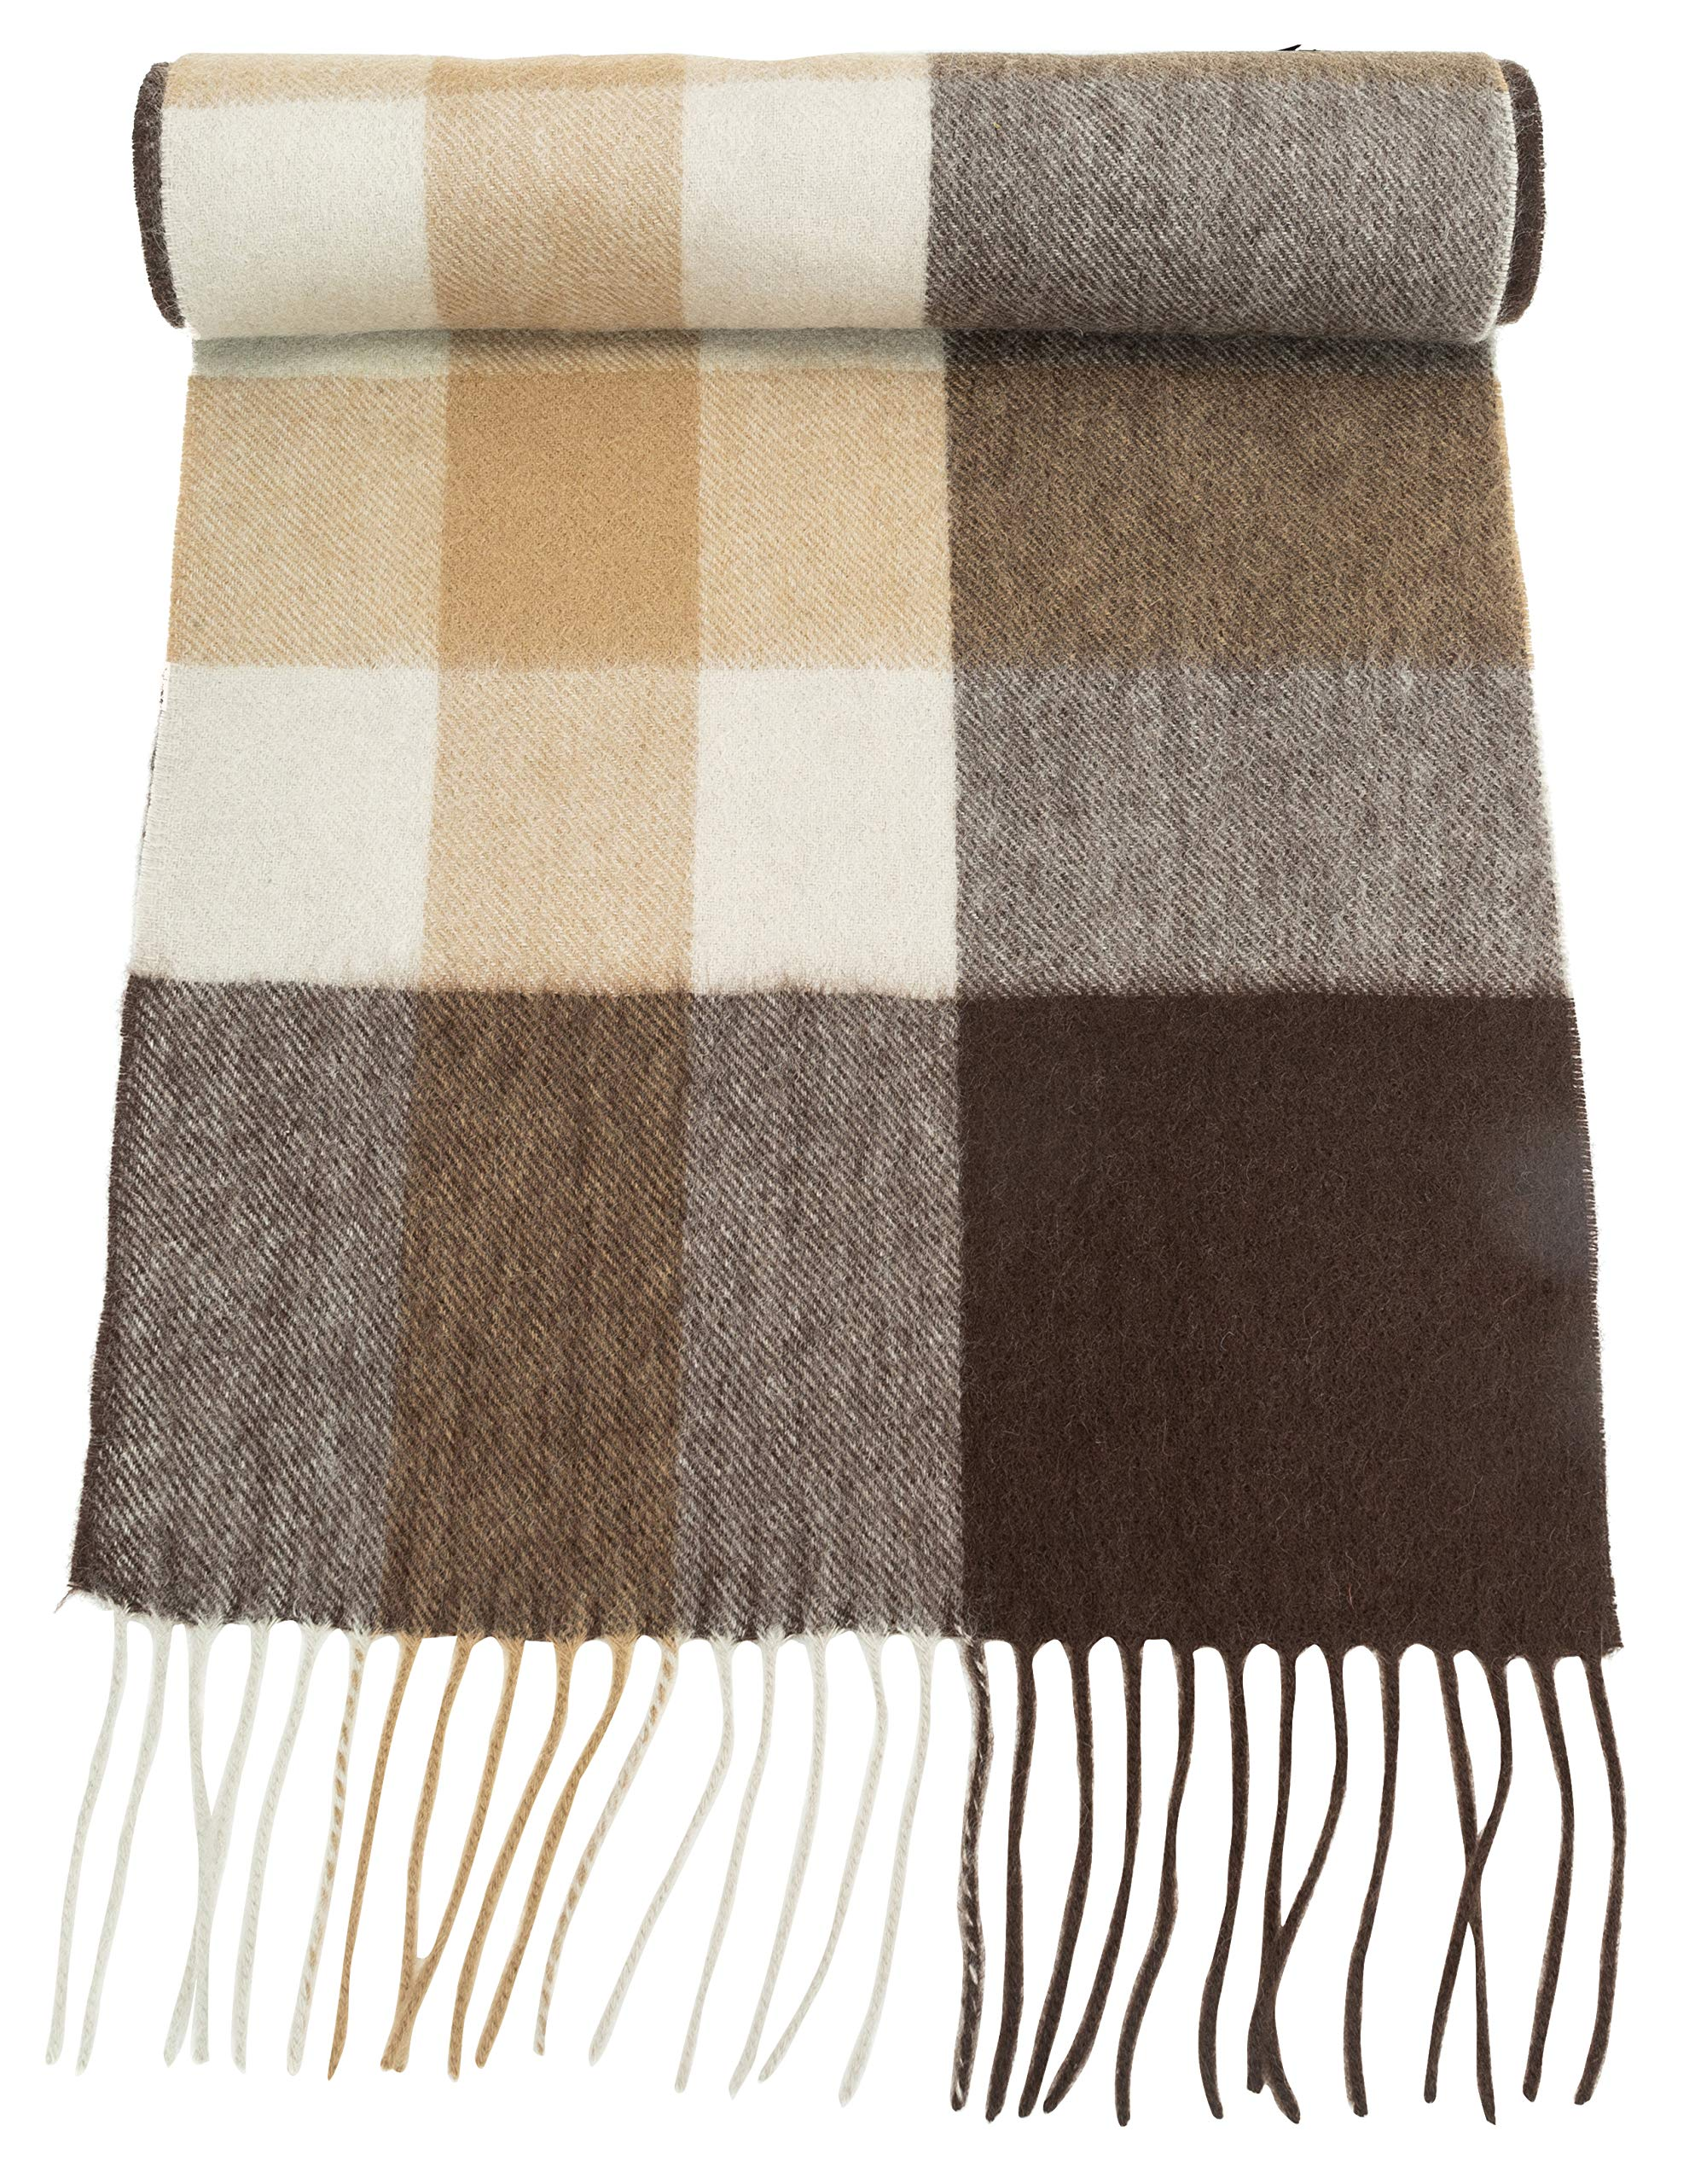 100% Pure Cashmere Scarf for Women, Solid Colors and Plaids, Unisex, Gift Box, Various Sizes, by Candor and Class (2018 Brown Boxes)